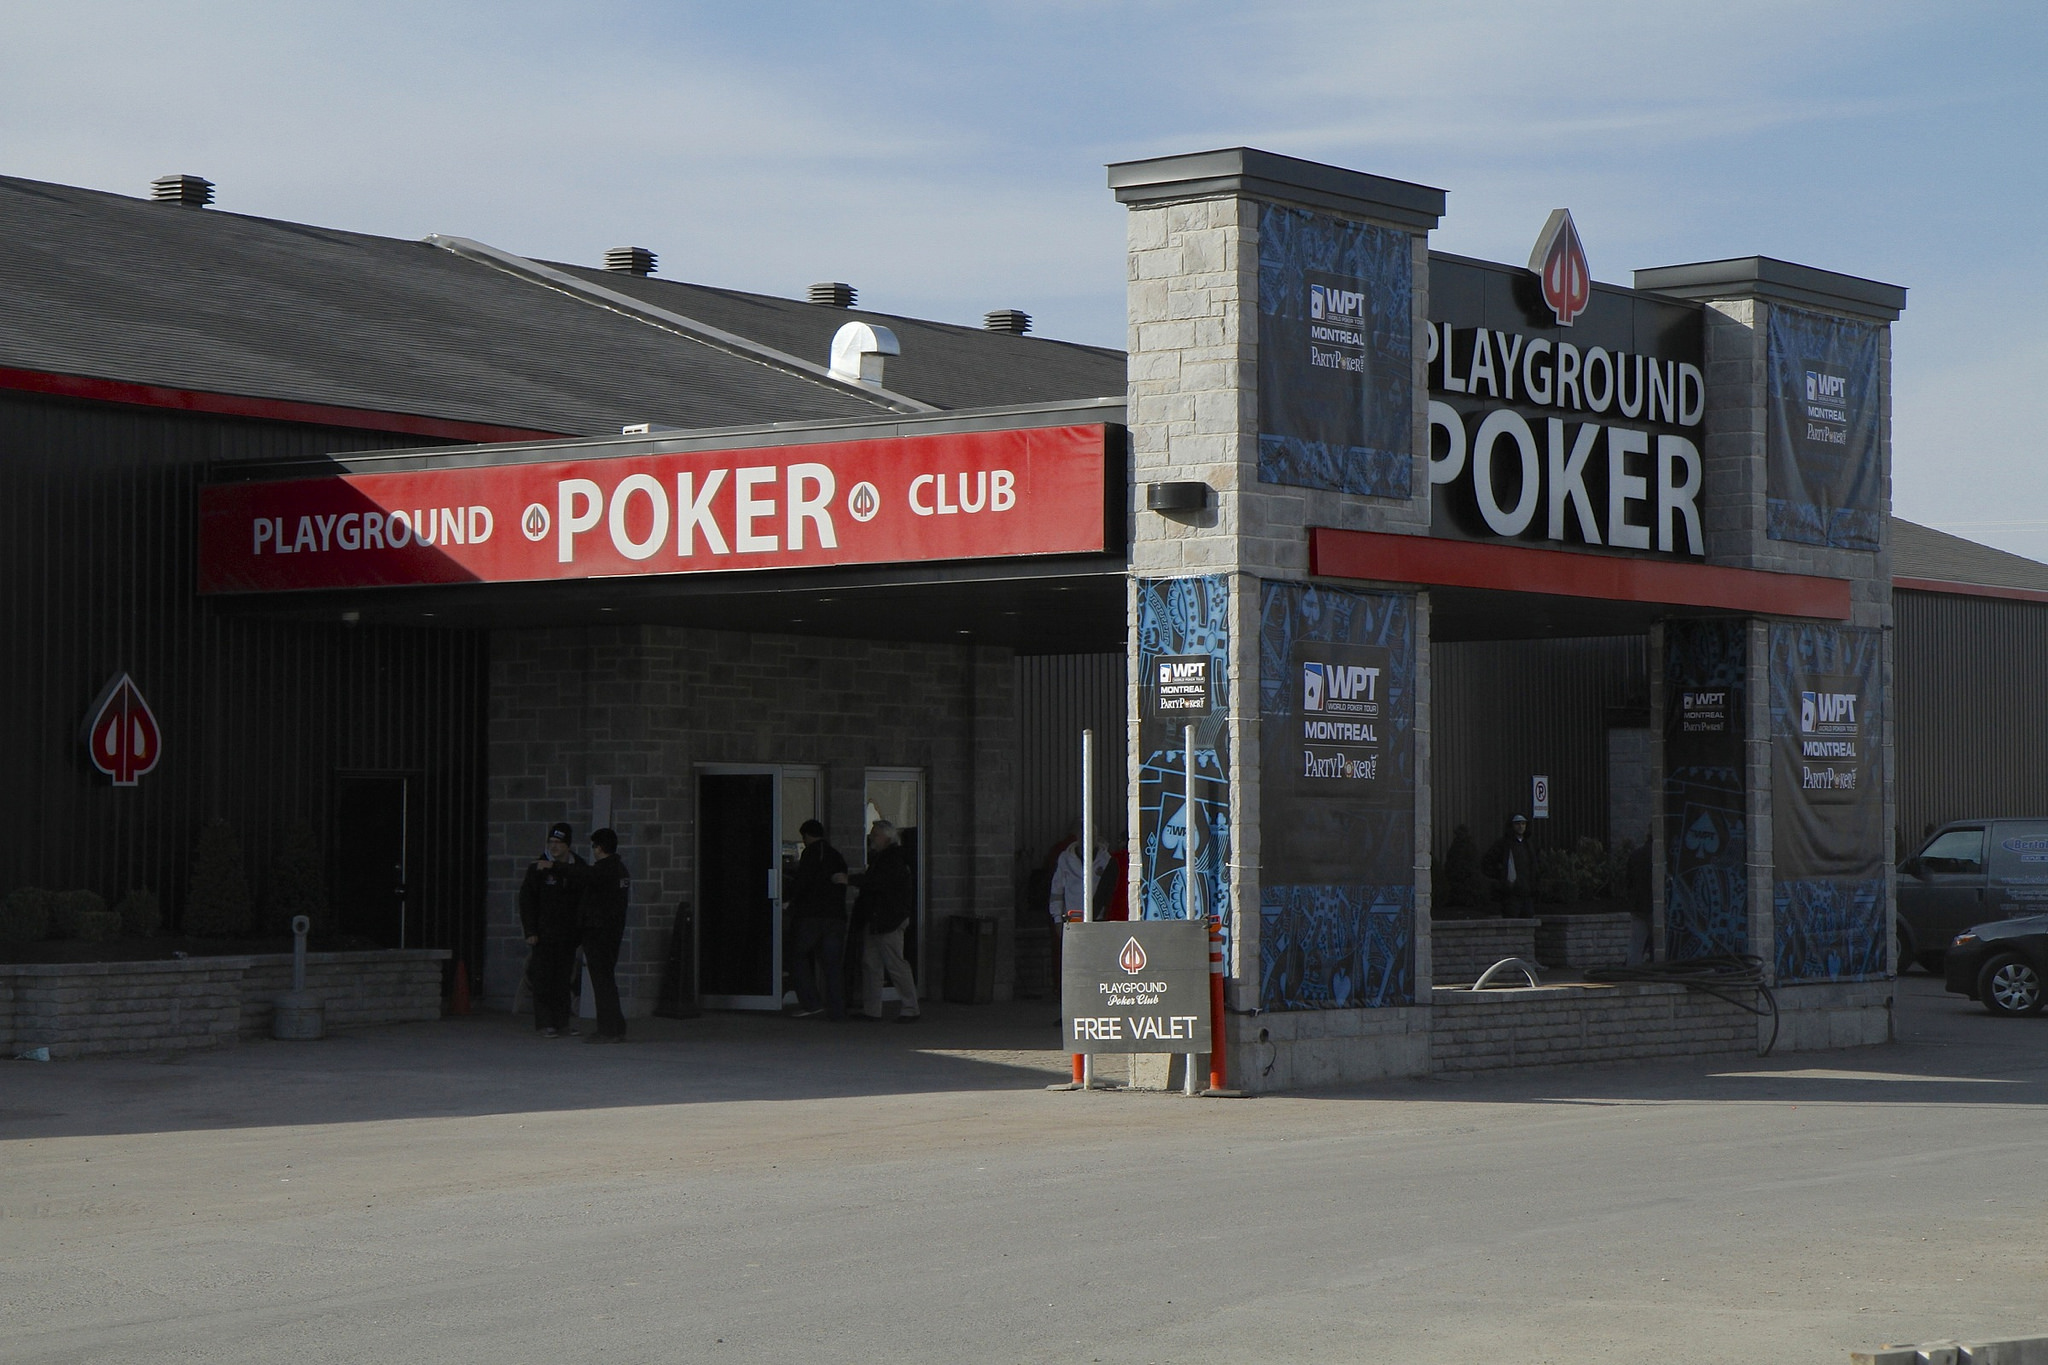 Playground Poker Club Tournament Schedule